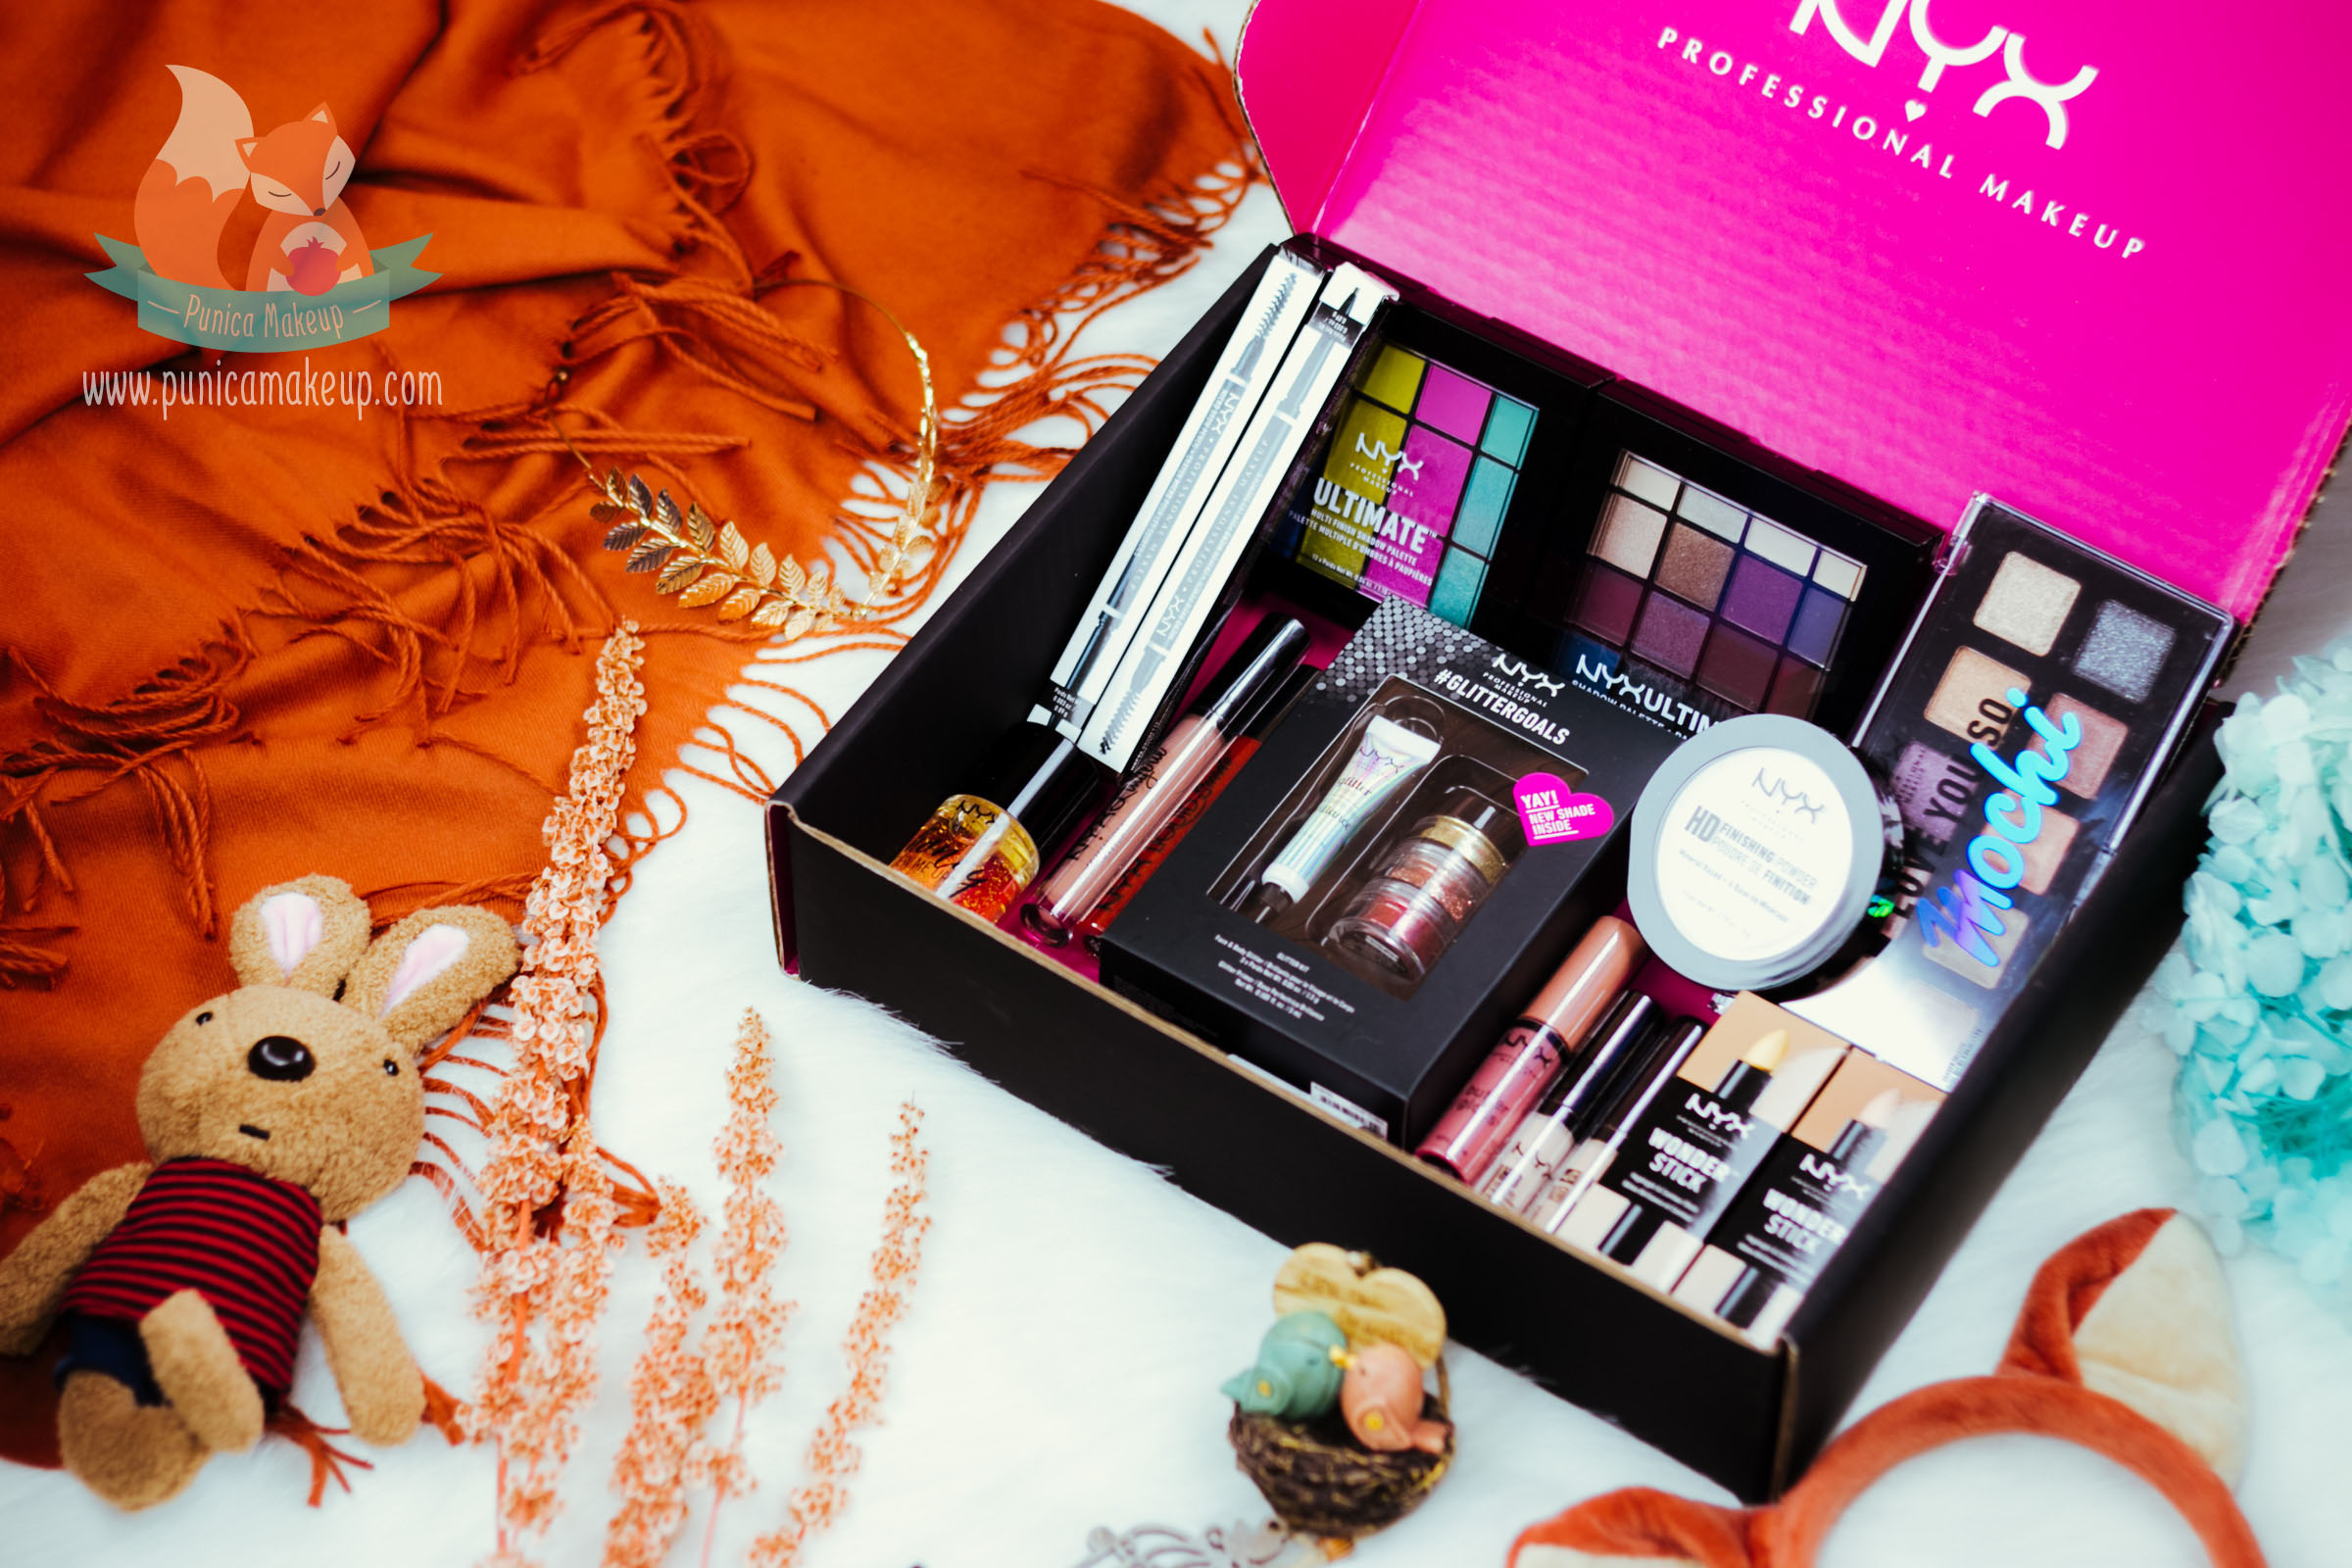 NYX Professional Makeup Limited Release Box Featured